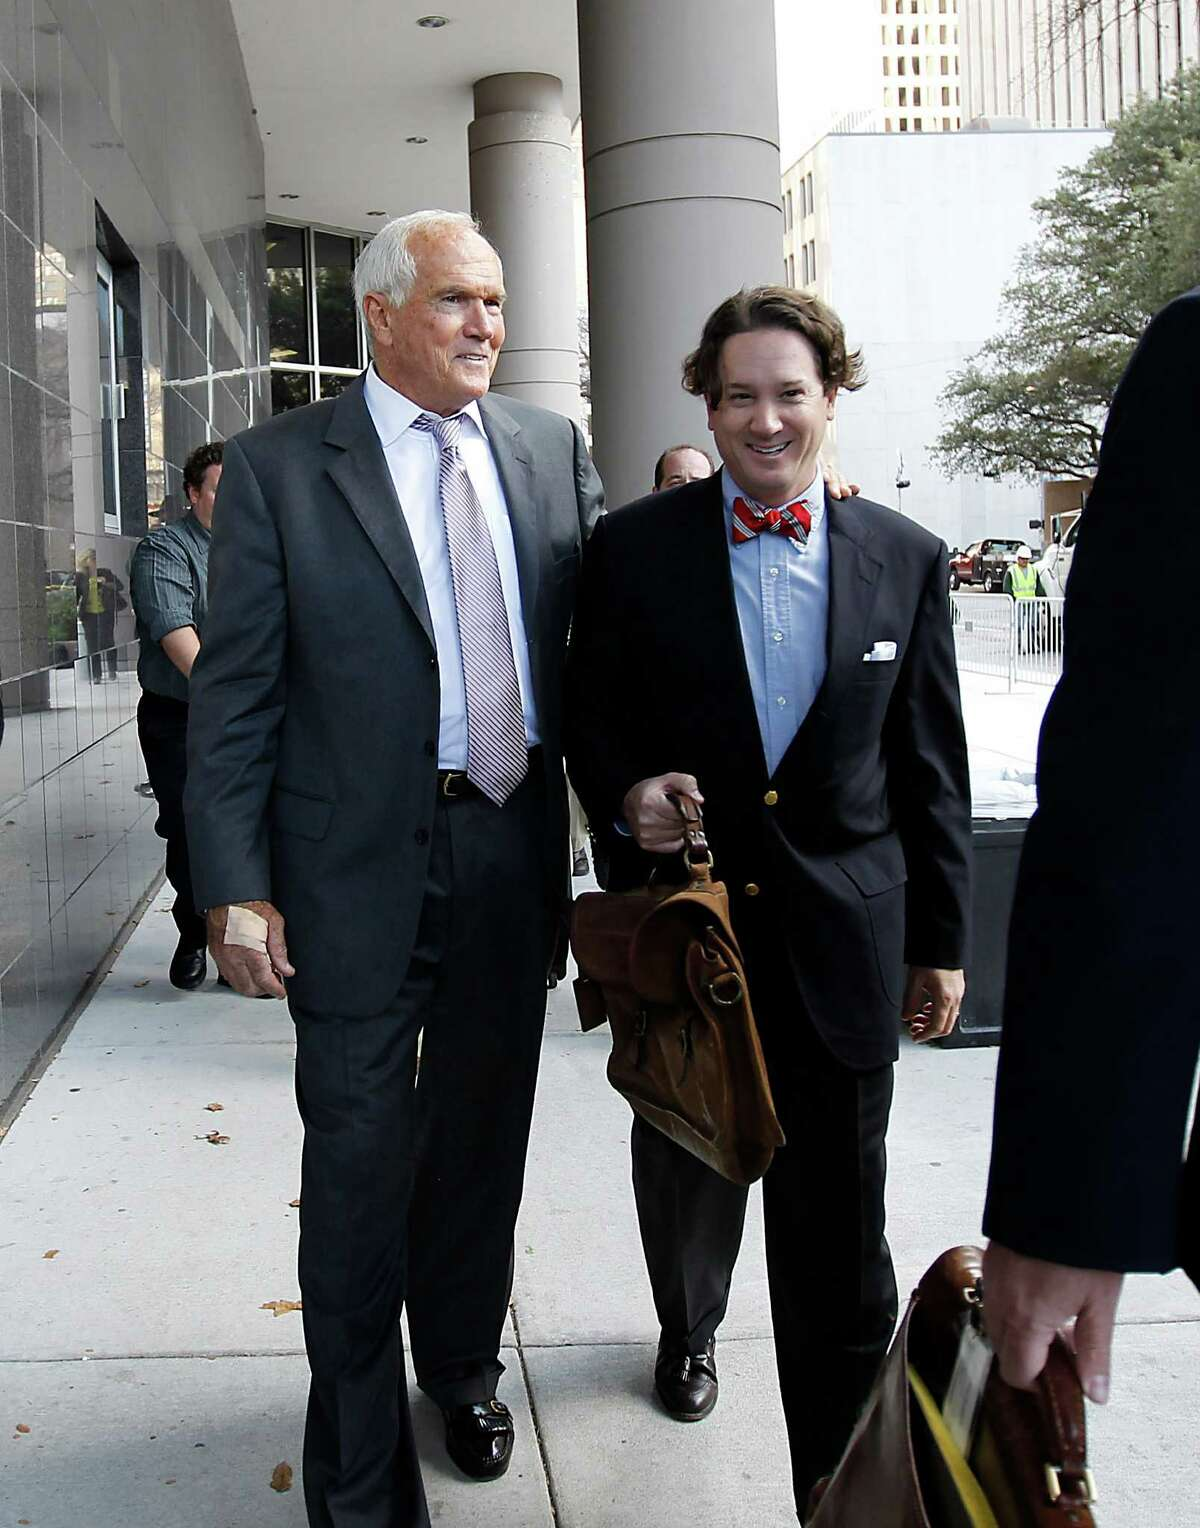 Former Harris County Commissioner Jerry Eversole leaves the Federal Courthouse, Wednesday, Jan. 4, 2012, in Houston. Eversole was given three years probation for pleading guilty to making false statements to FBI agents, which was a felony. ( Karen Warren / Houston Chronicle )